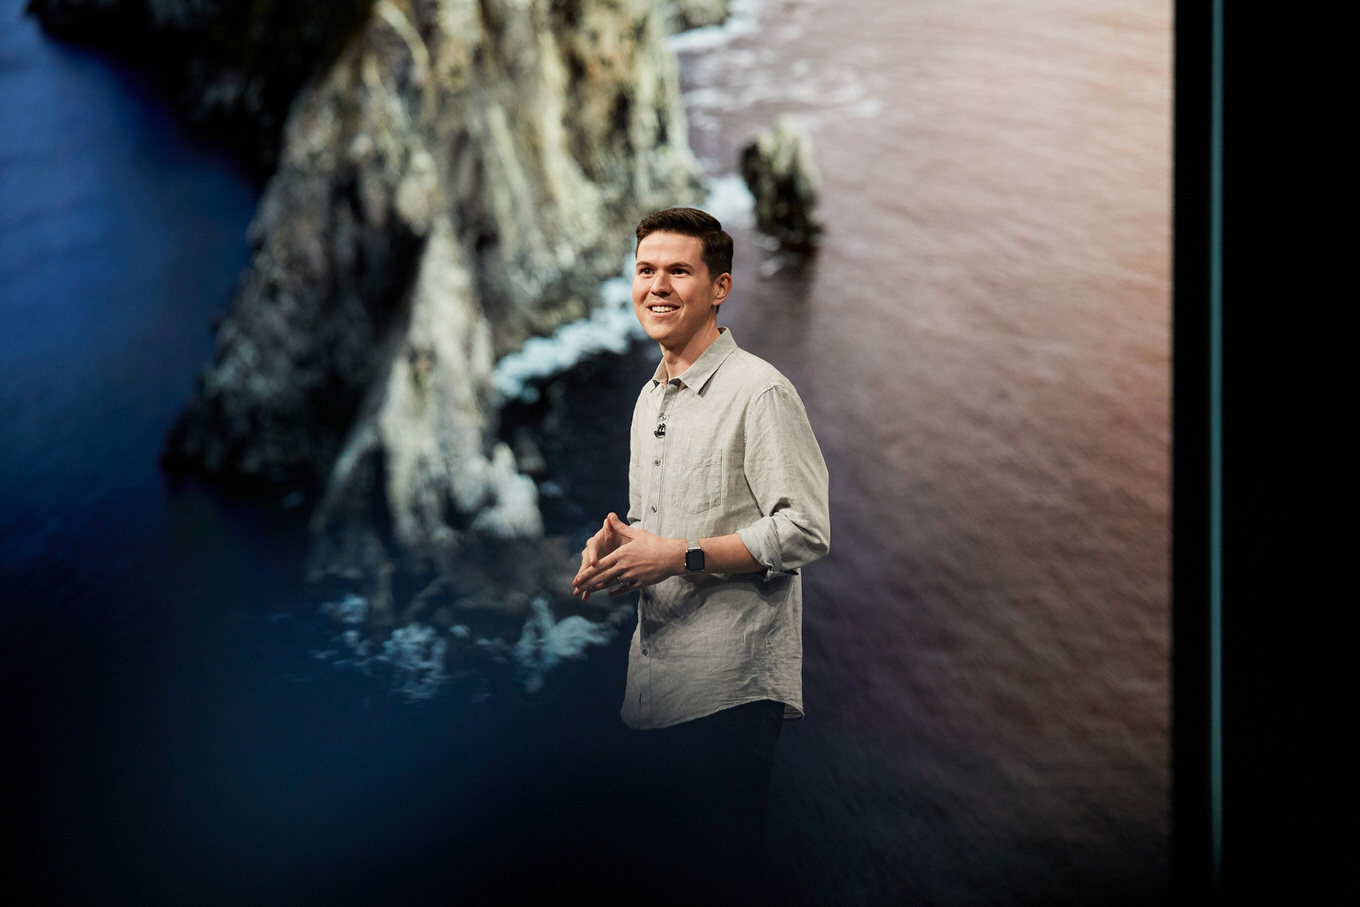 apple-highlights-from-wwdc2019-rob-chatfield-discusses-developer-tools-06031